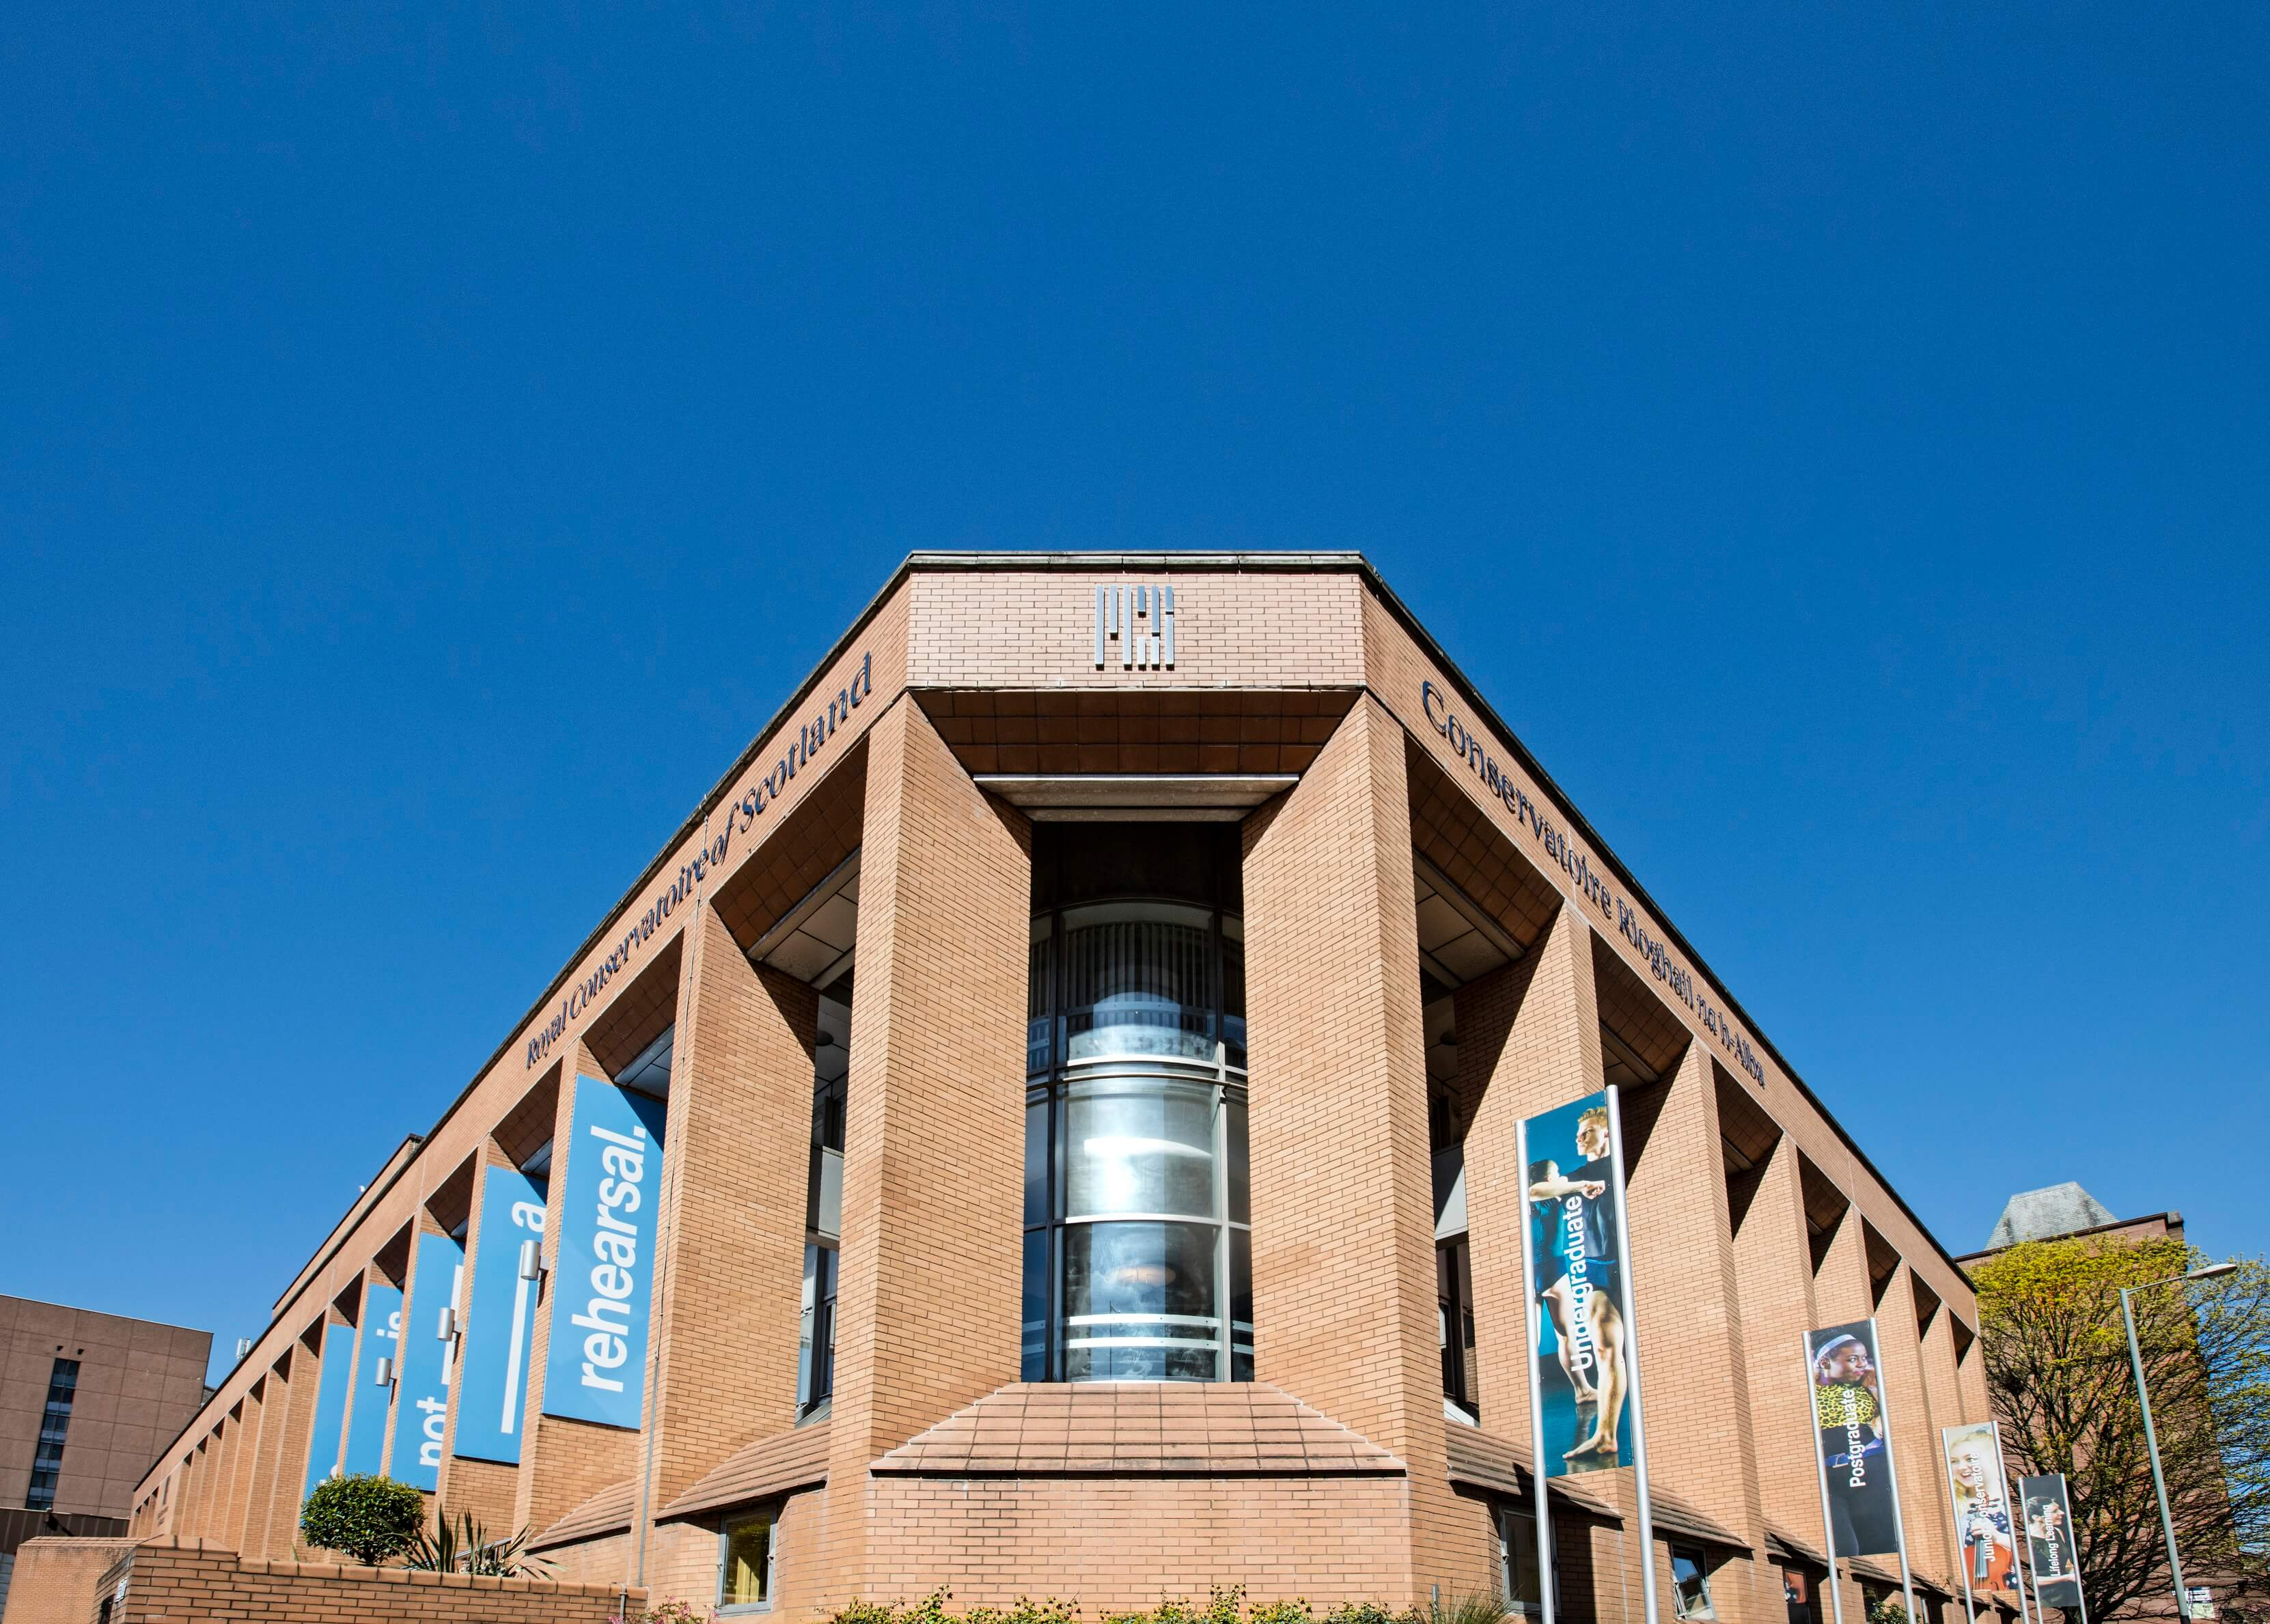 Scotland's national conservatoire appoints new governors Image